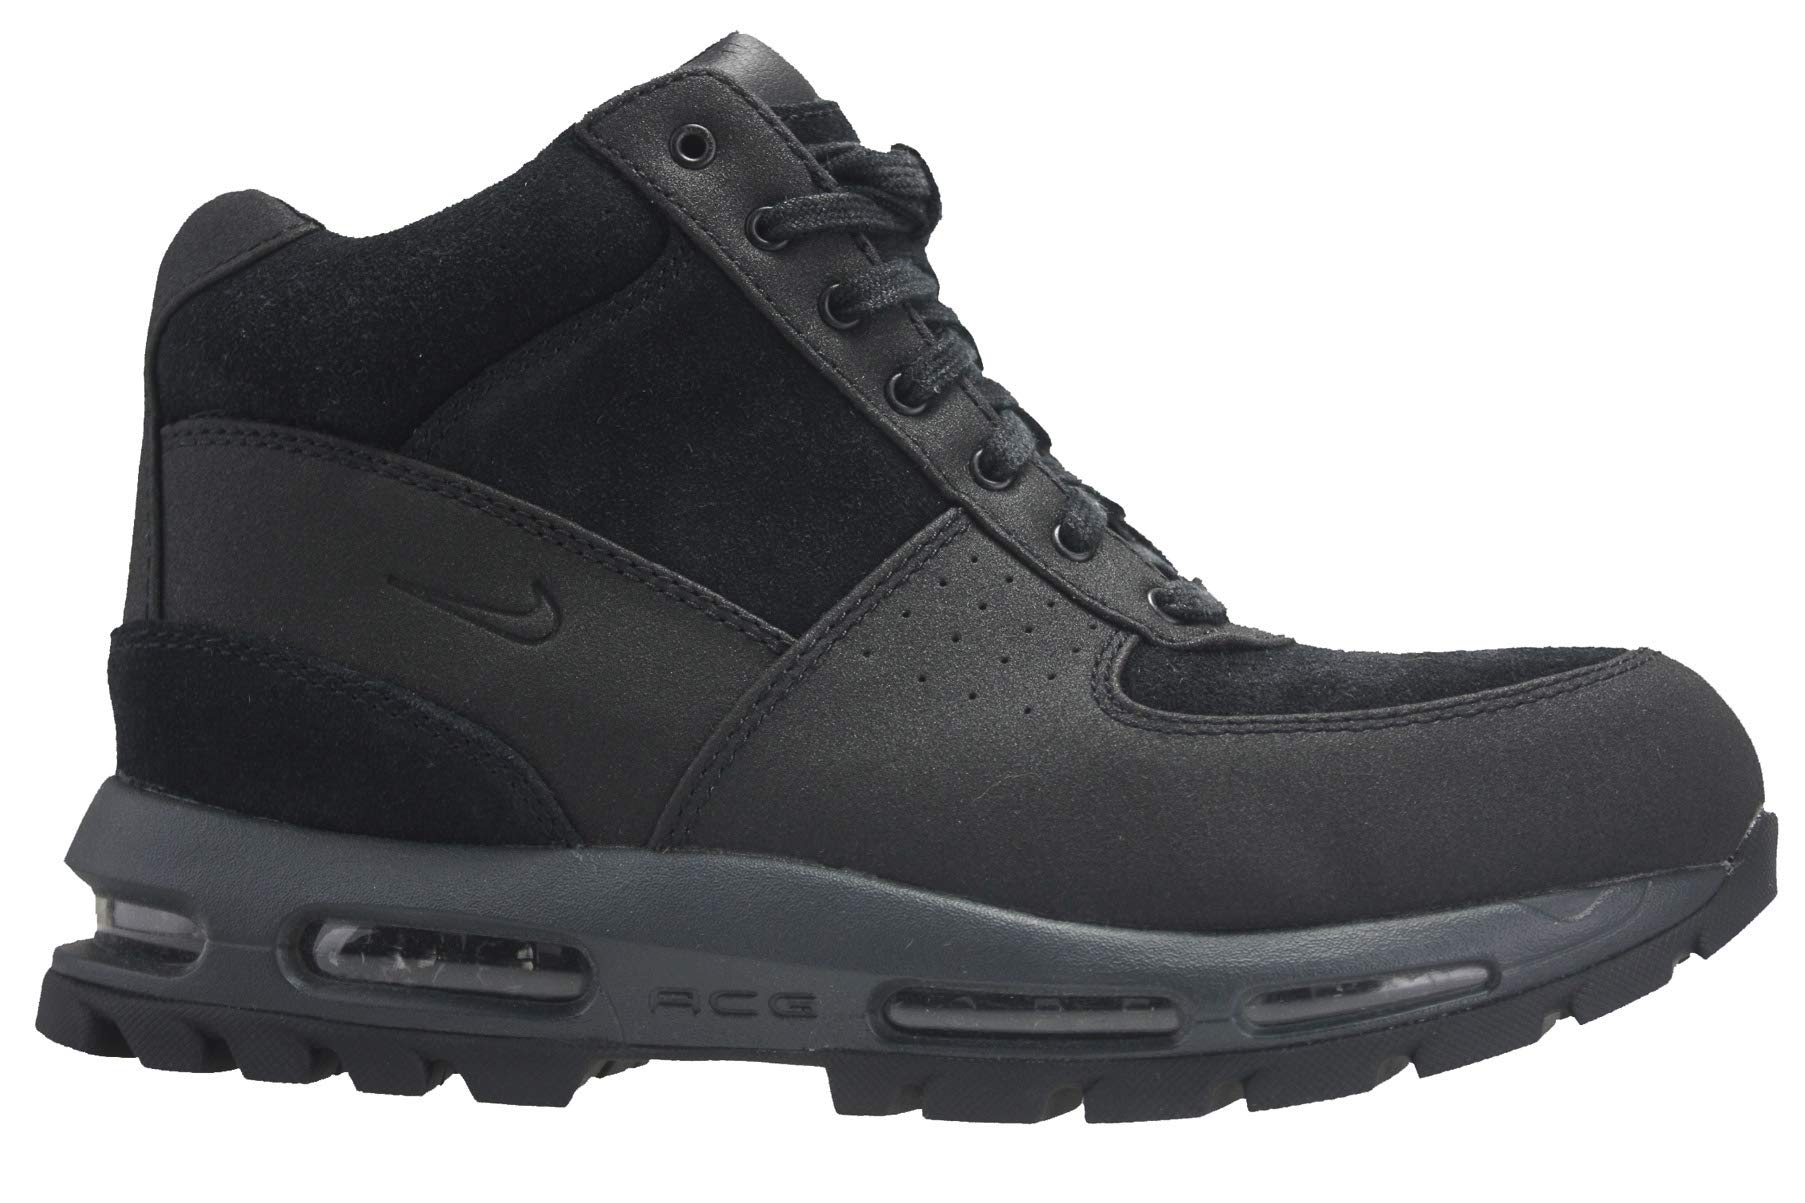 hot sale online 70011 bd931 NIKE Men s Air Max Goadome Boot, Black Black Anthracite, 9